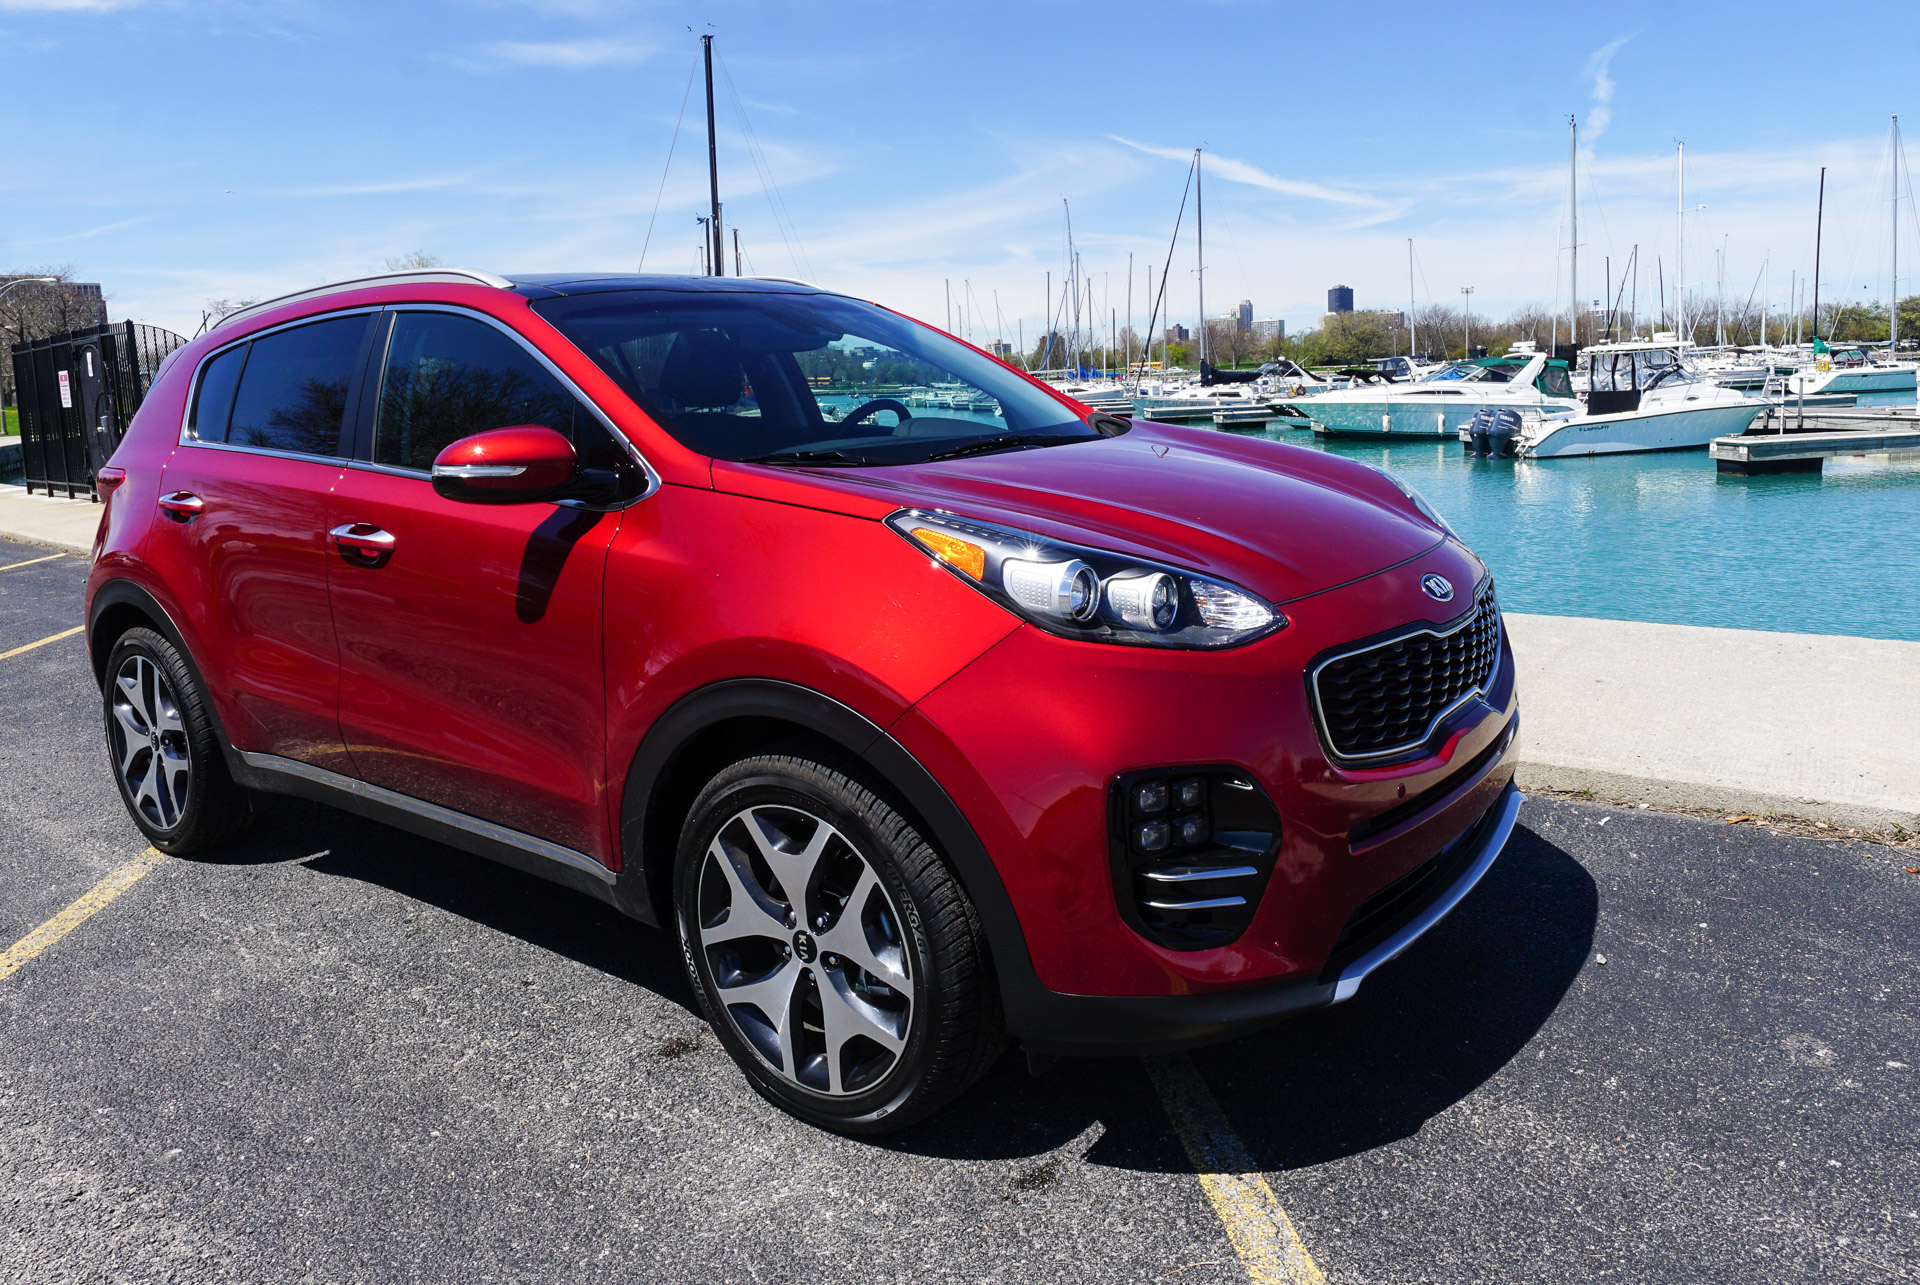 Review: 2017 Kia Sportage SX Turbo - 95 Octane